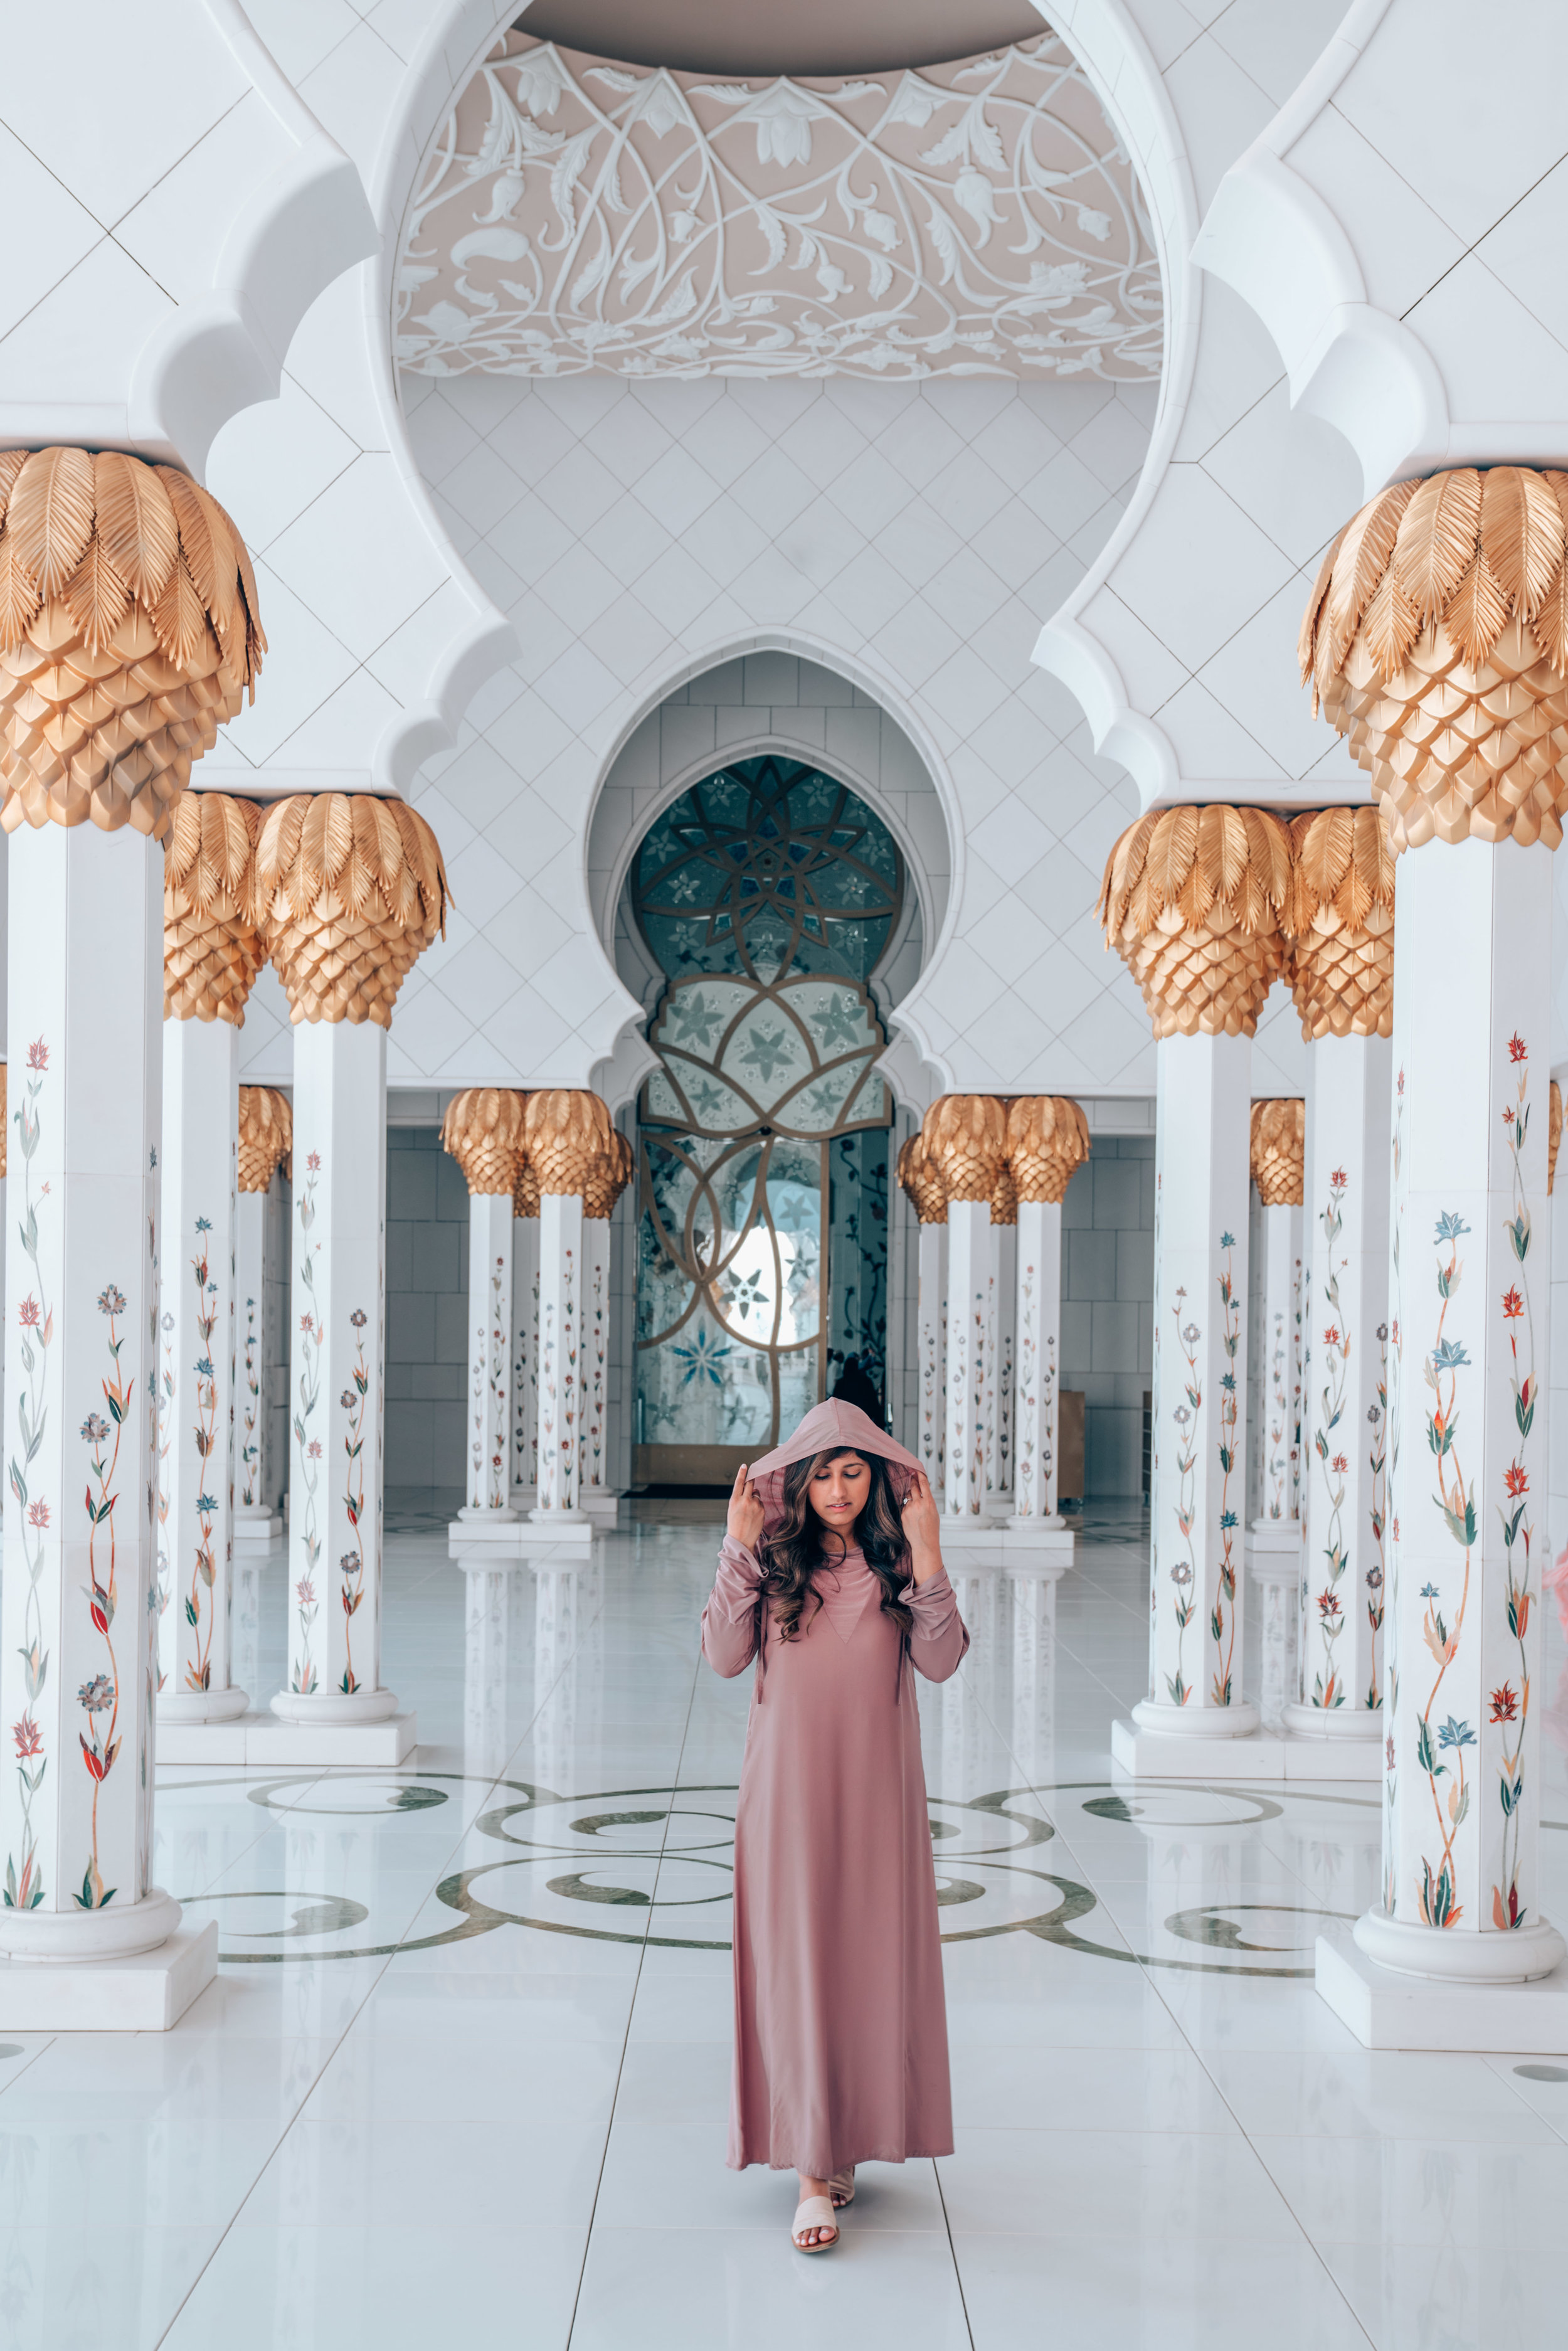 Wearing a traditional Abaya at the Sheikh Zayed Mosque in Abu Dhabi, UAE